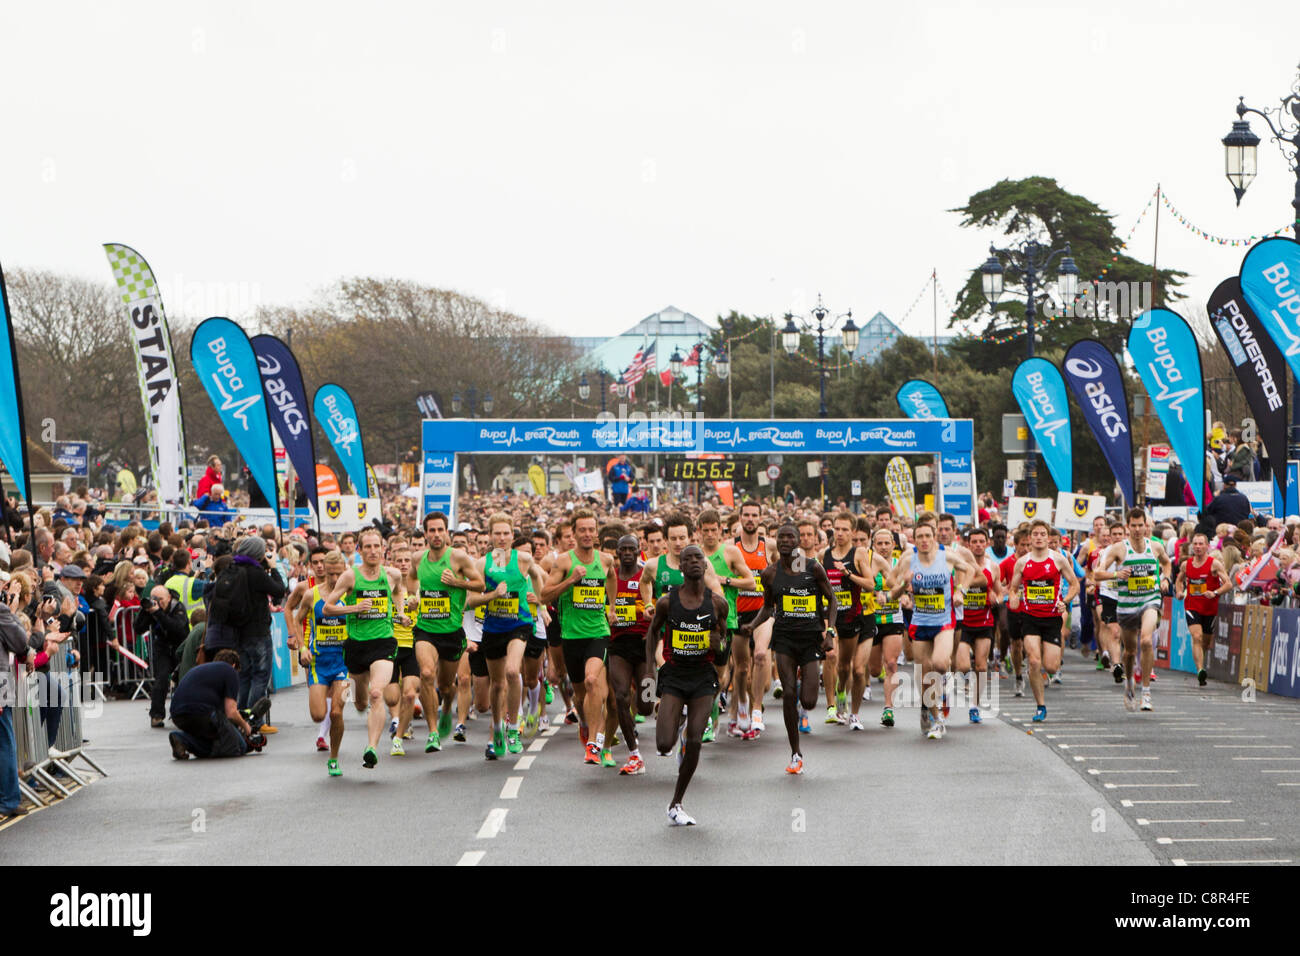 PORTSMOUTH, UK, 30/10/2011. The Elite Male race of the Bupa Great South Run gets underway shortly before 11am. - Stock Image